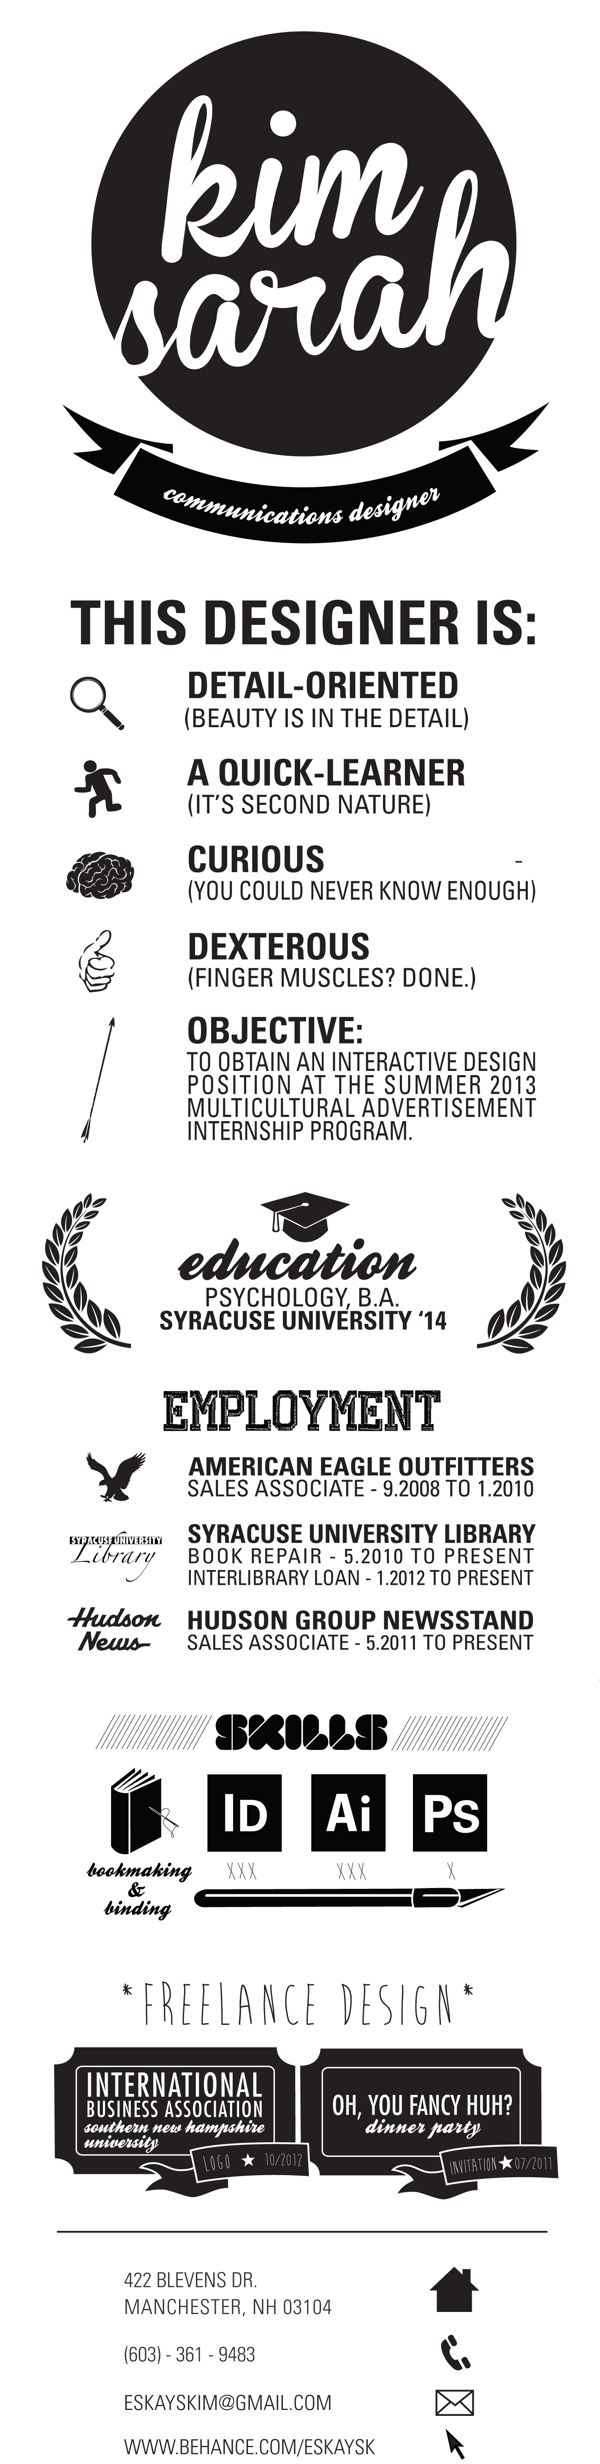 Picnictoimpeachus  Fascinating  Ideas About Infographic Resume On Pinterest  My Portfolio  With Fascinating  Ideas About Infographic Resume On Pinterest  My Portfolio Resume And Resume Design With Astonishing Example Of Chronological Resume Also Nurse Practitioner Resumes In Addition Objective For Warehouse Resume And Sample Cook Resume As Well As Accounts Receivable Resume Sample Additionally Computer Science Resume Objective From Pinterestcom With Picnictoimpeachus  Fascinating  Ideas About Infographic Resume On Pinterest  My Portfolio  With Astonishing  Ideas About Infographic Resume On Pinterest  My Portfolio Resume And Resume Design And Fascinating Example Of Chronological Resume Also Nurse Practitioner Resumes In Addition Objective For Warehouse Resume From Pinterestcom